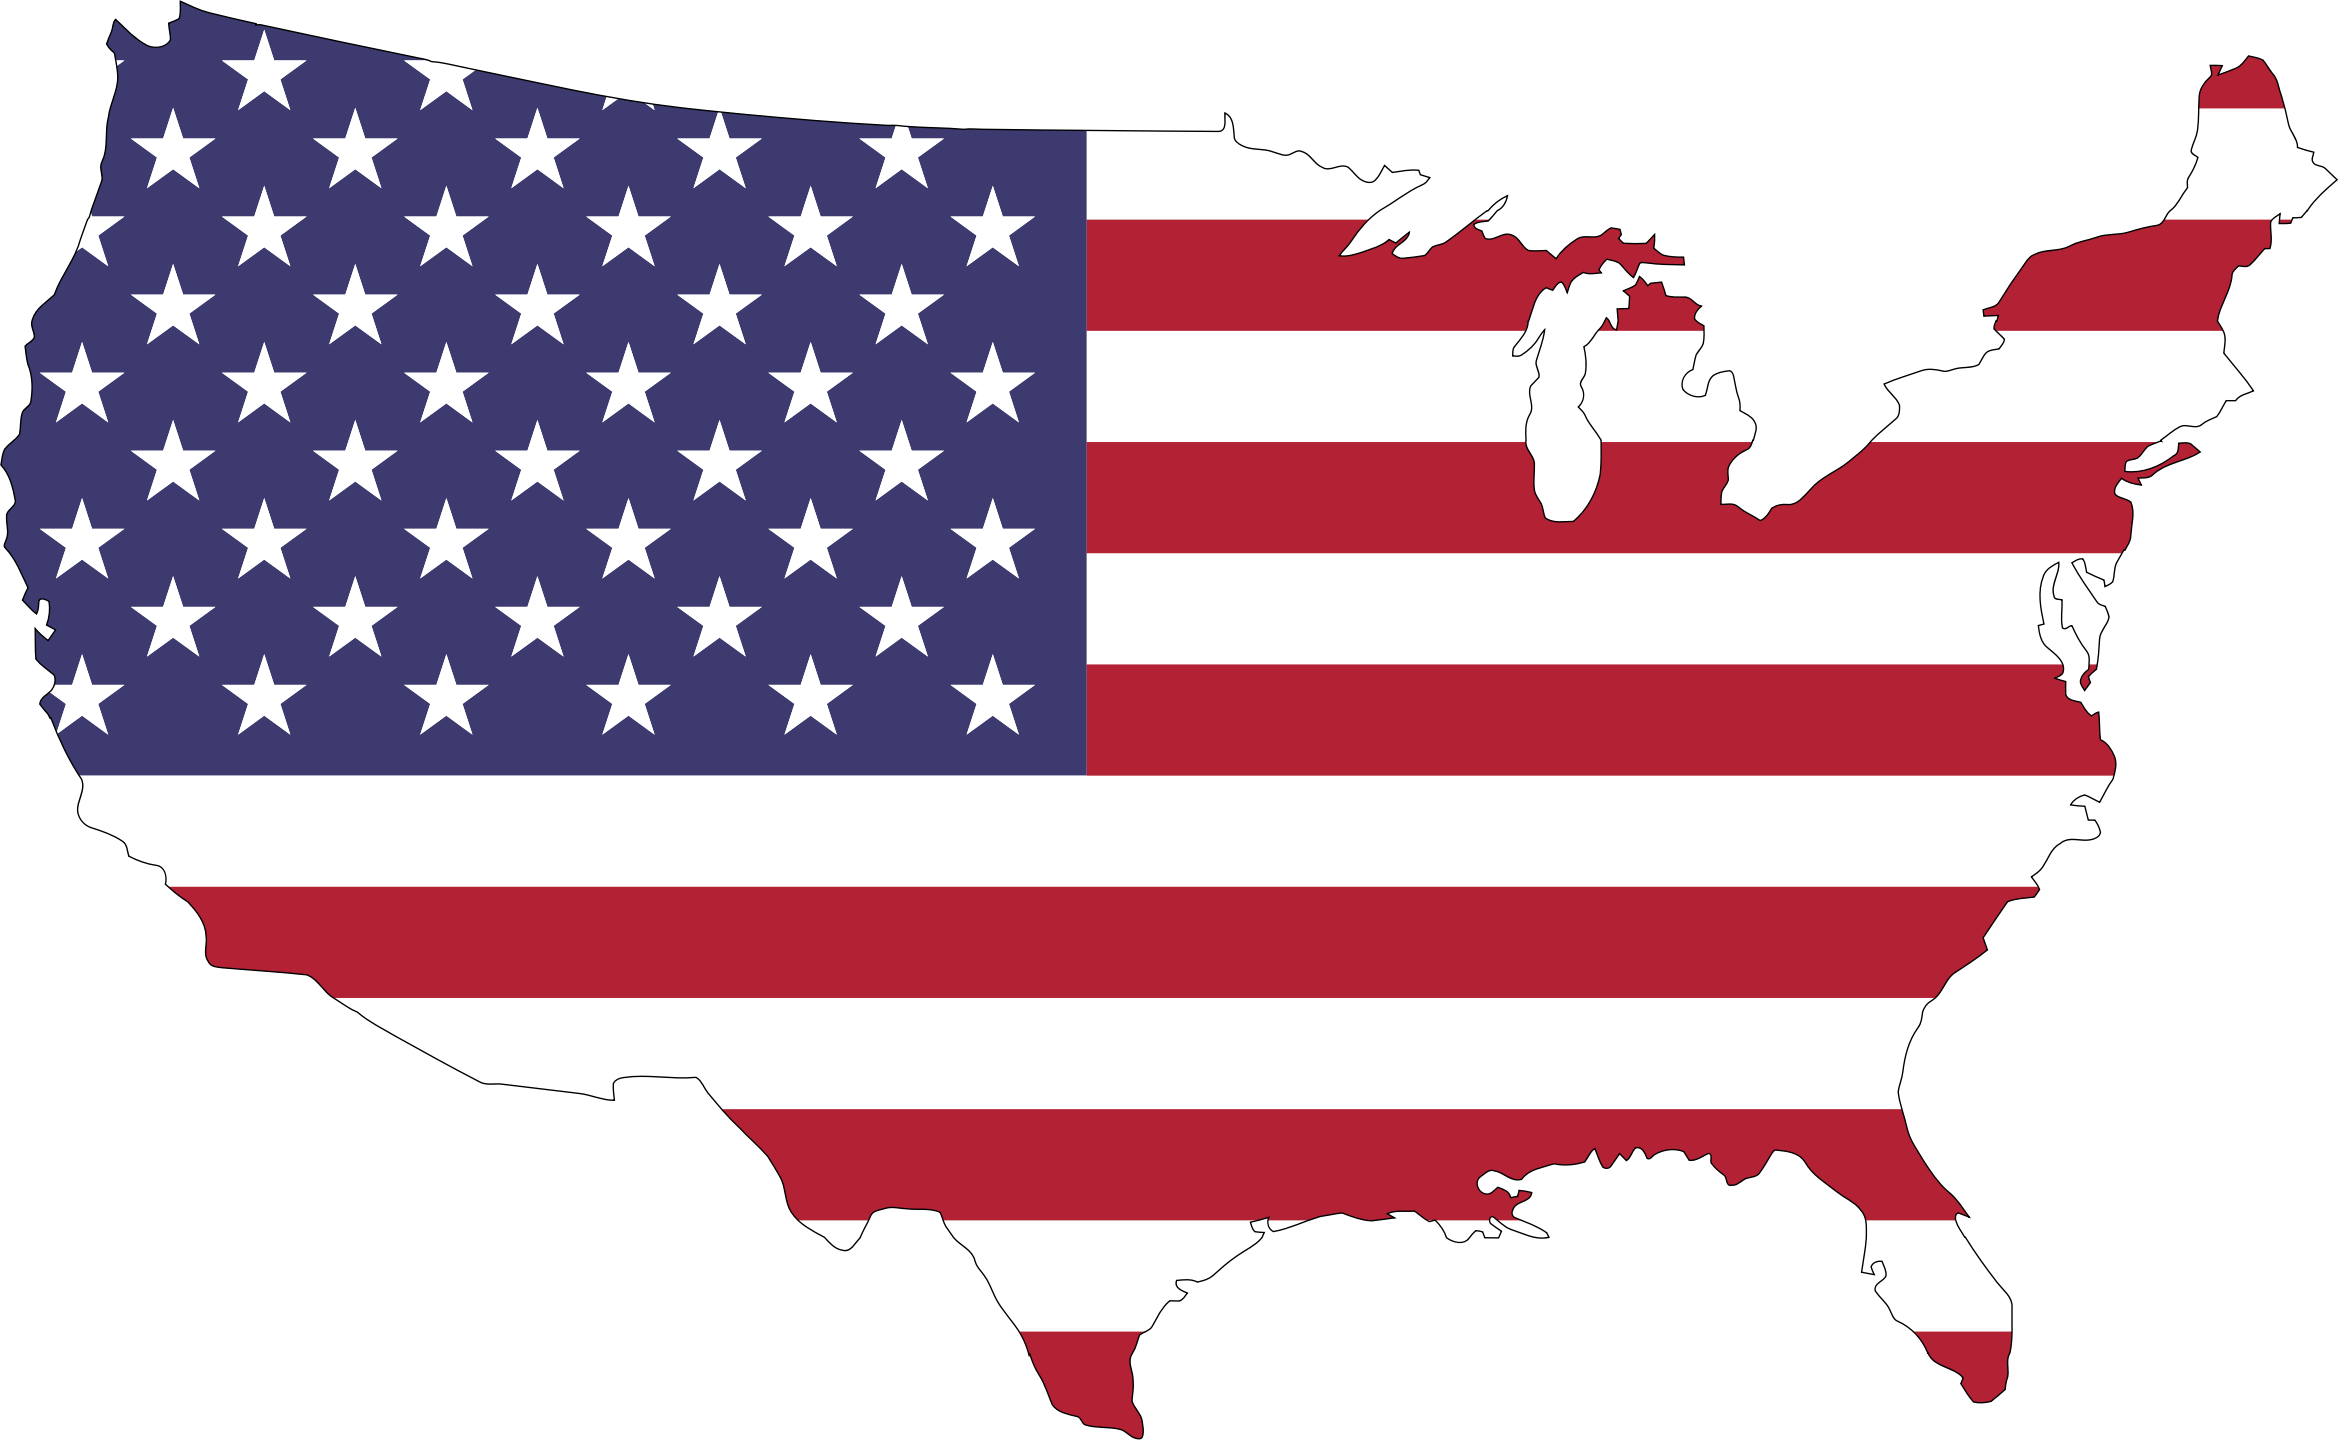 American flag clipart vector free vector free library American Flag Country vector clipart image - Free stock photo ... vector free library